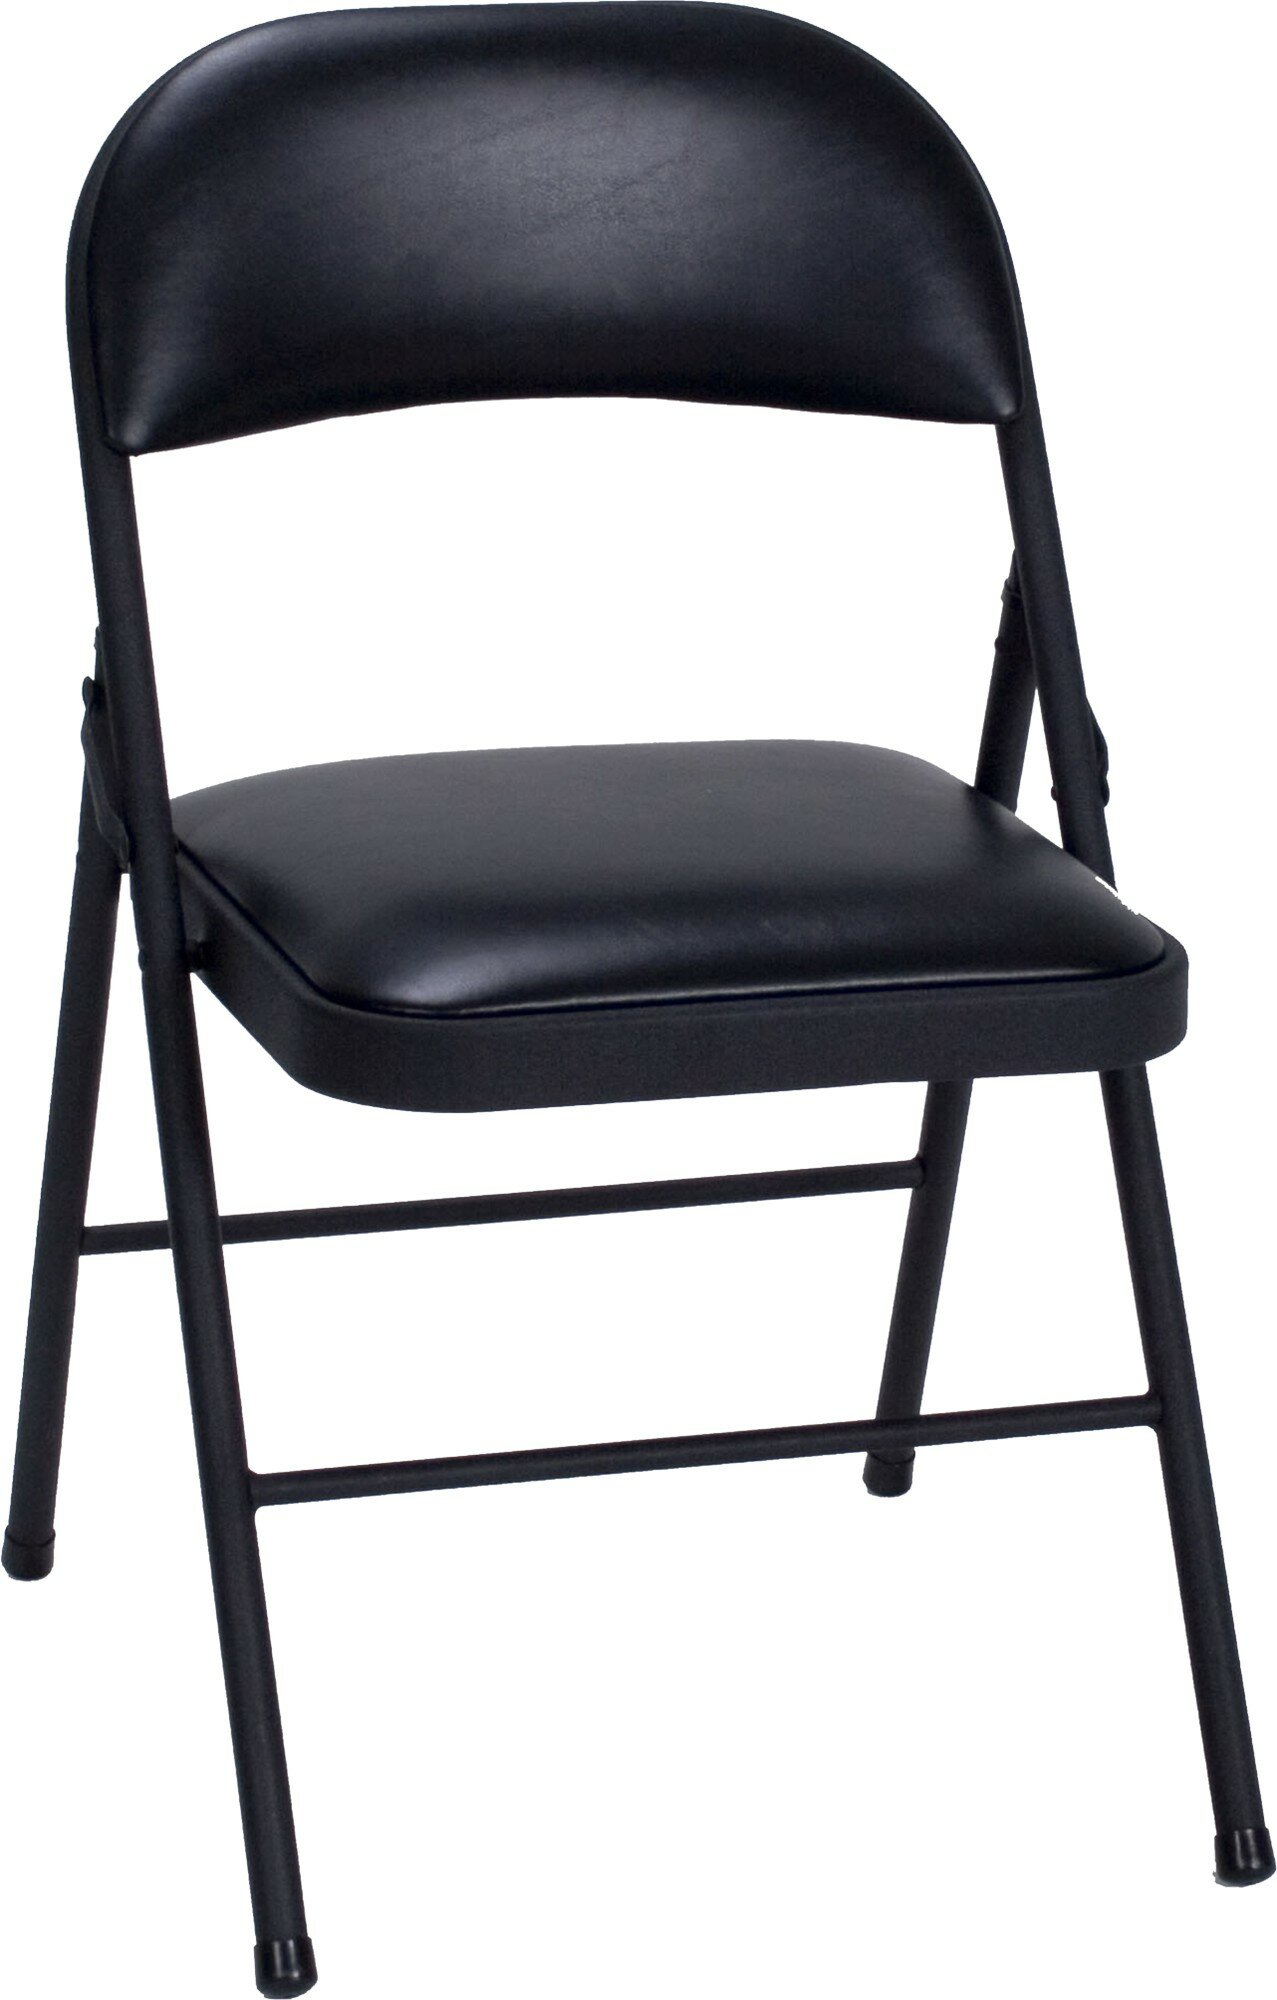 Hodedah Folding Chair & Reviews